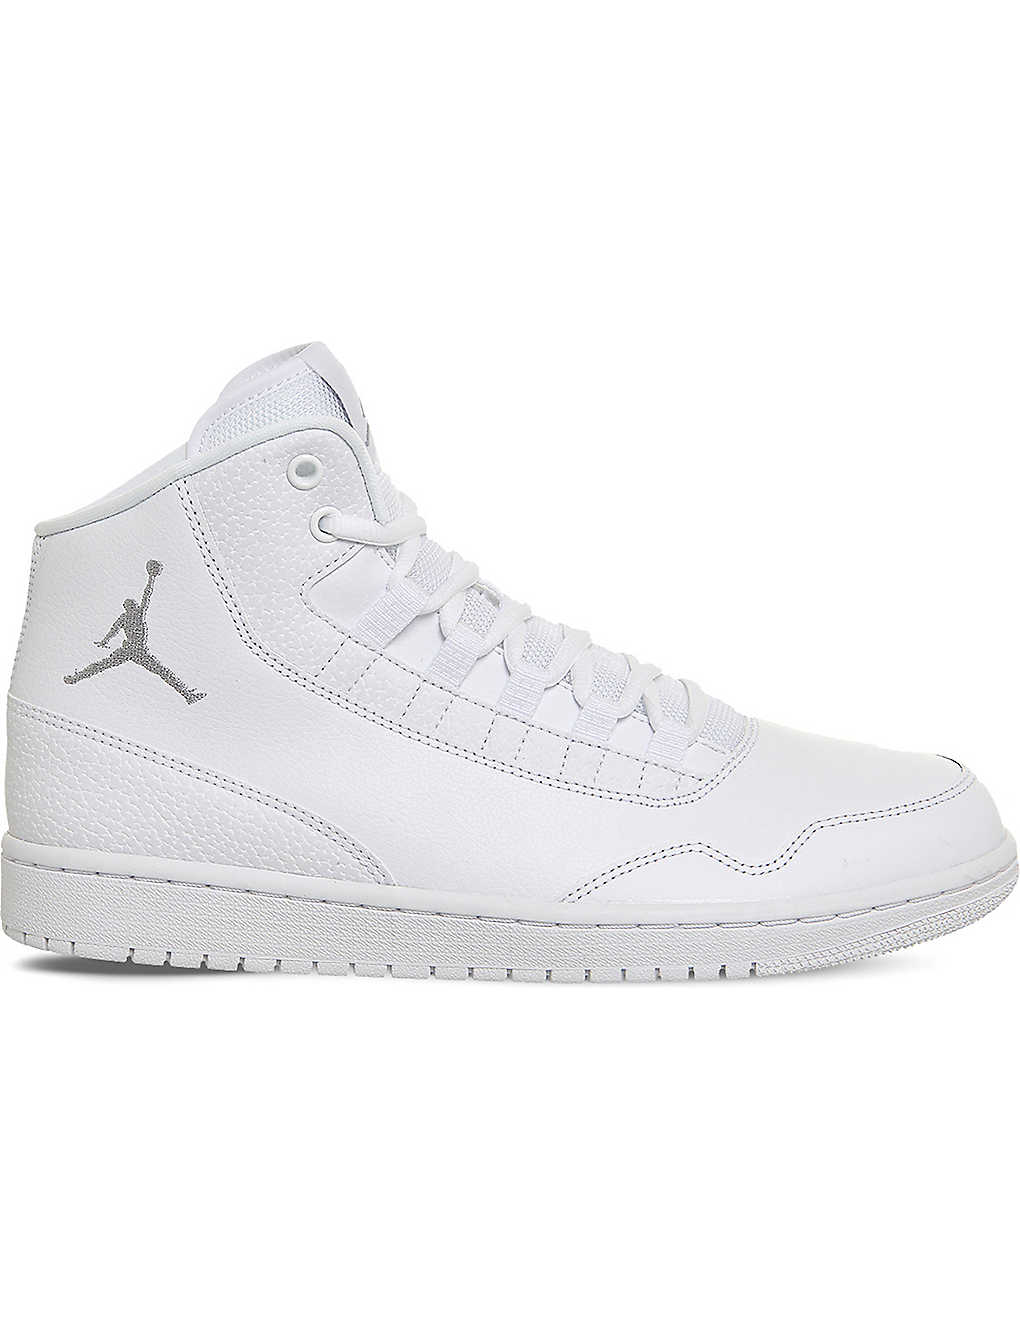 quality design 1a719 828ee NIKE Jordan Executive high-top trainers